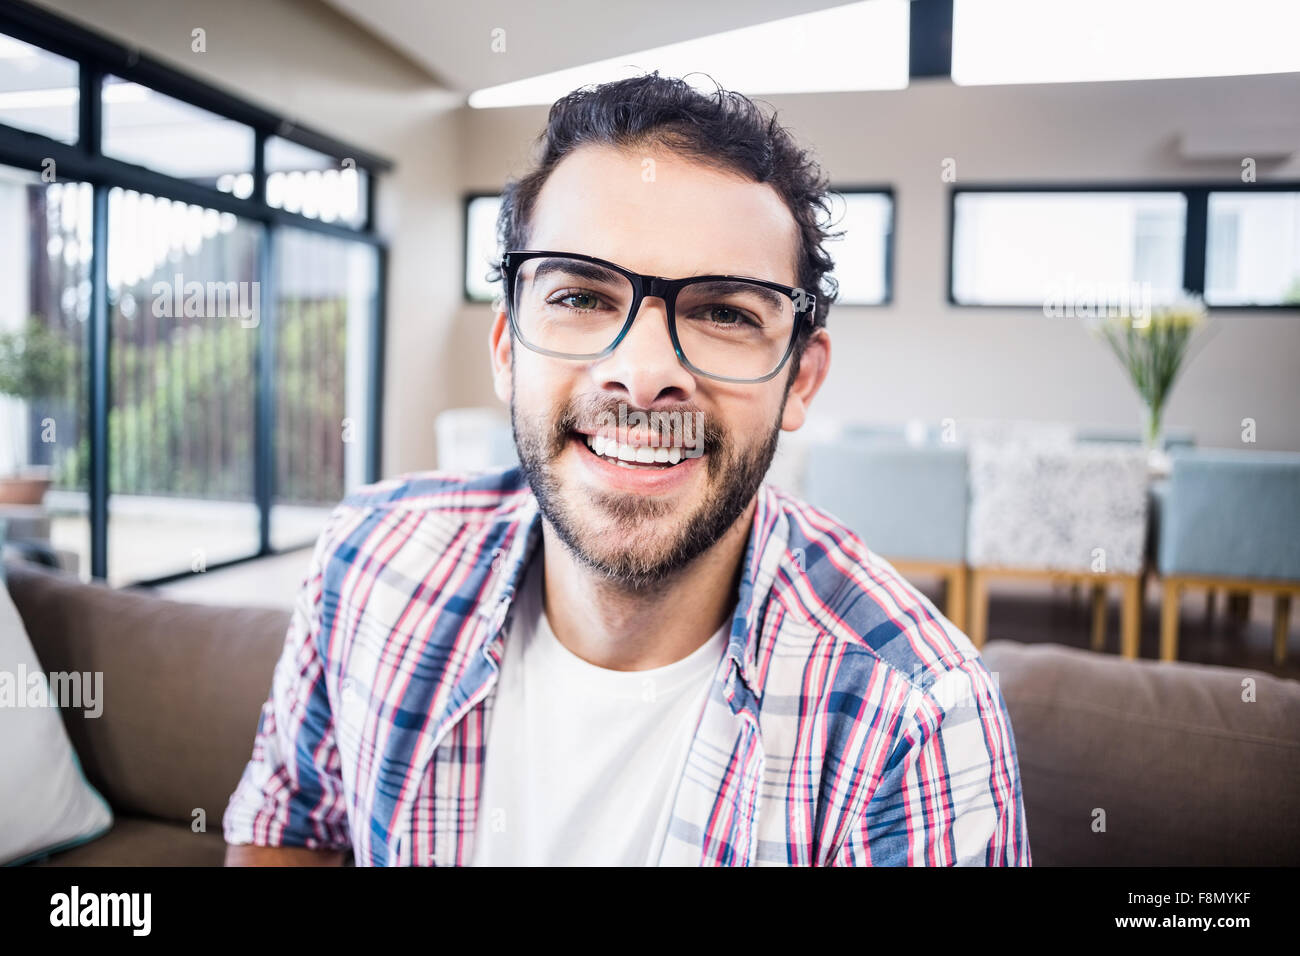 Handsome man smiling at the camera - Stock Image